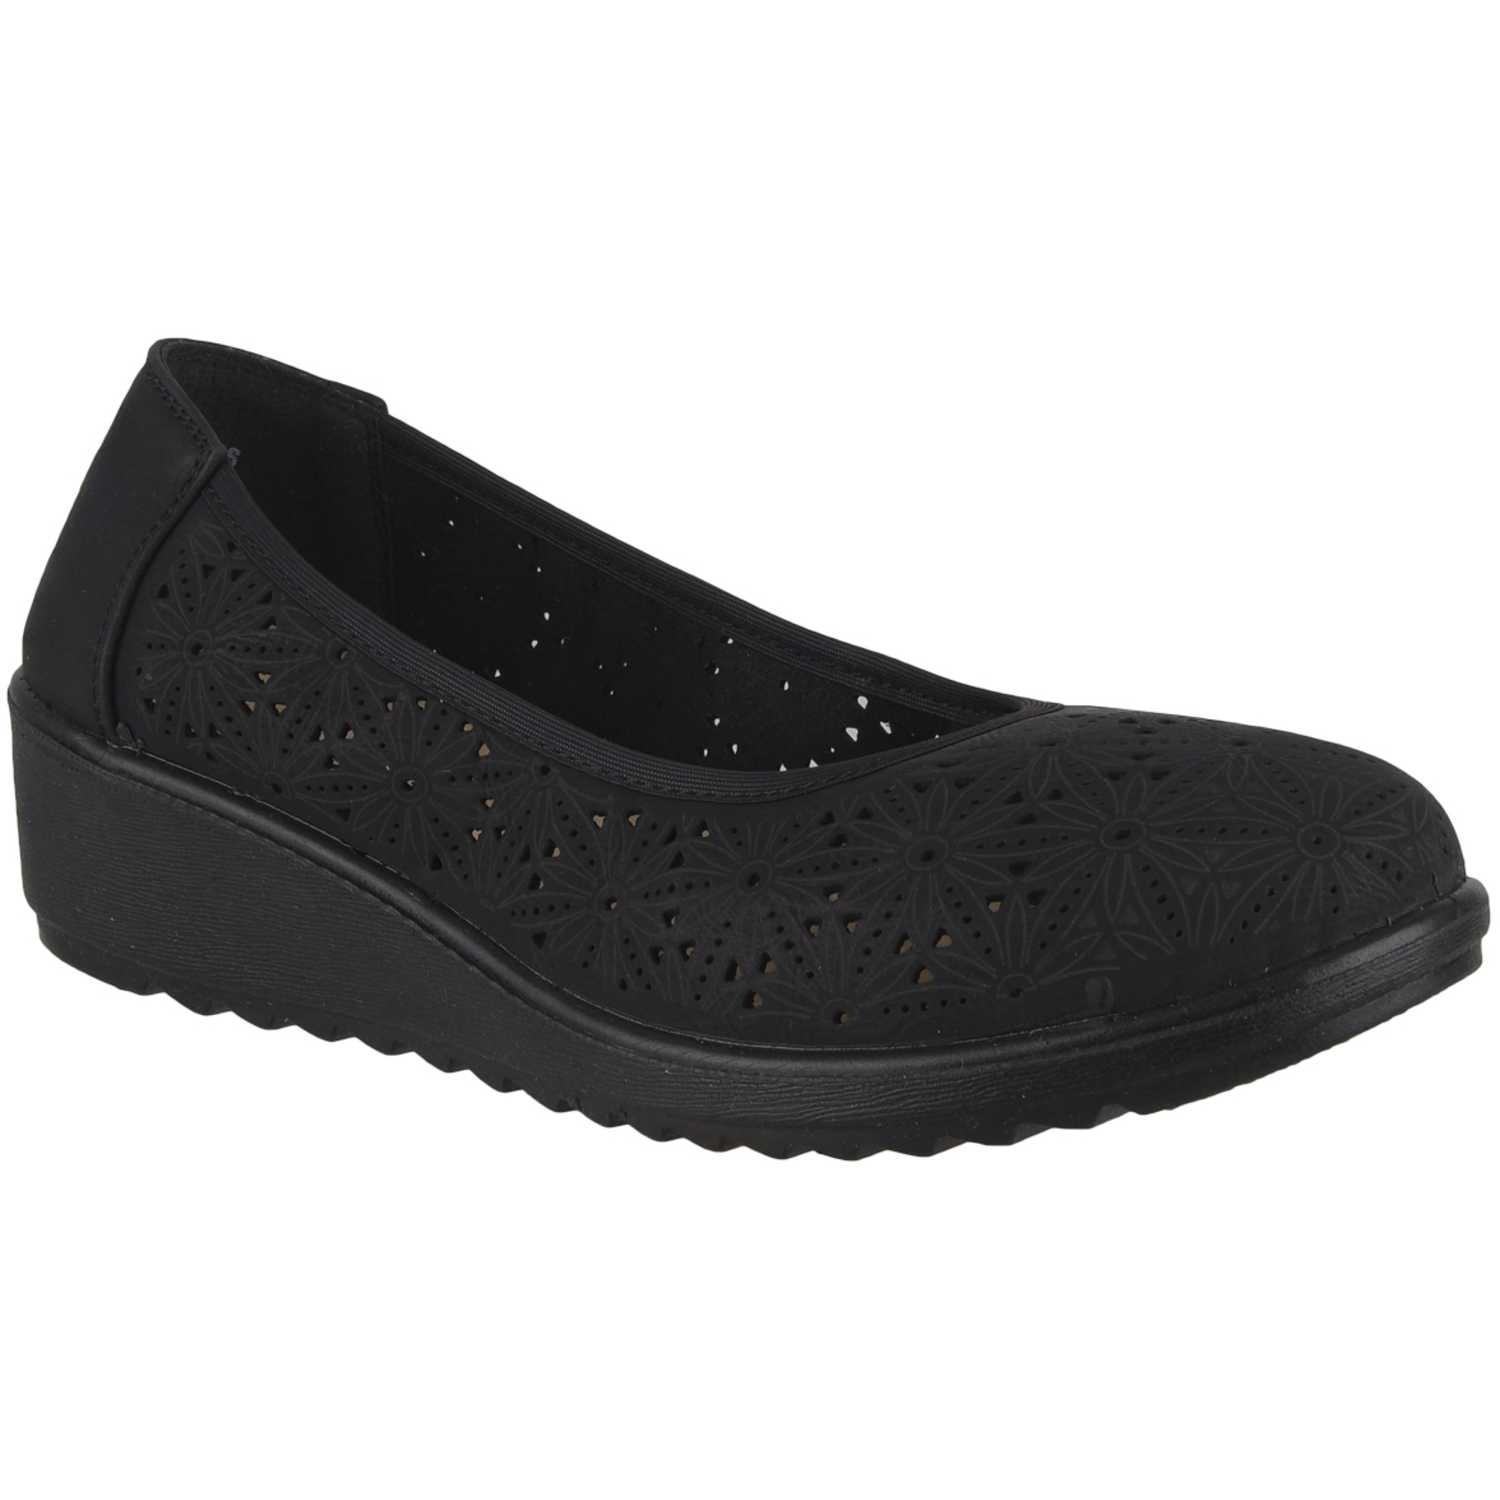 Platanitos Cw 238 Negro Estiletos y pumps